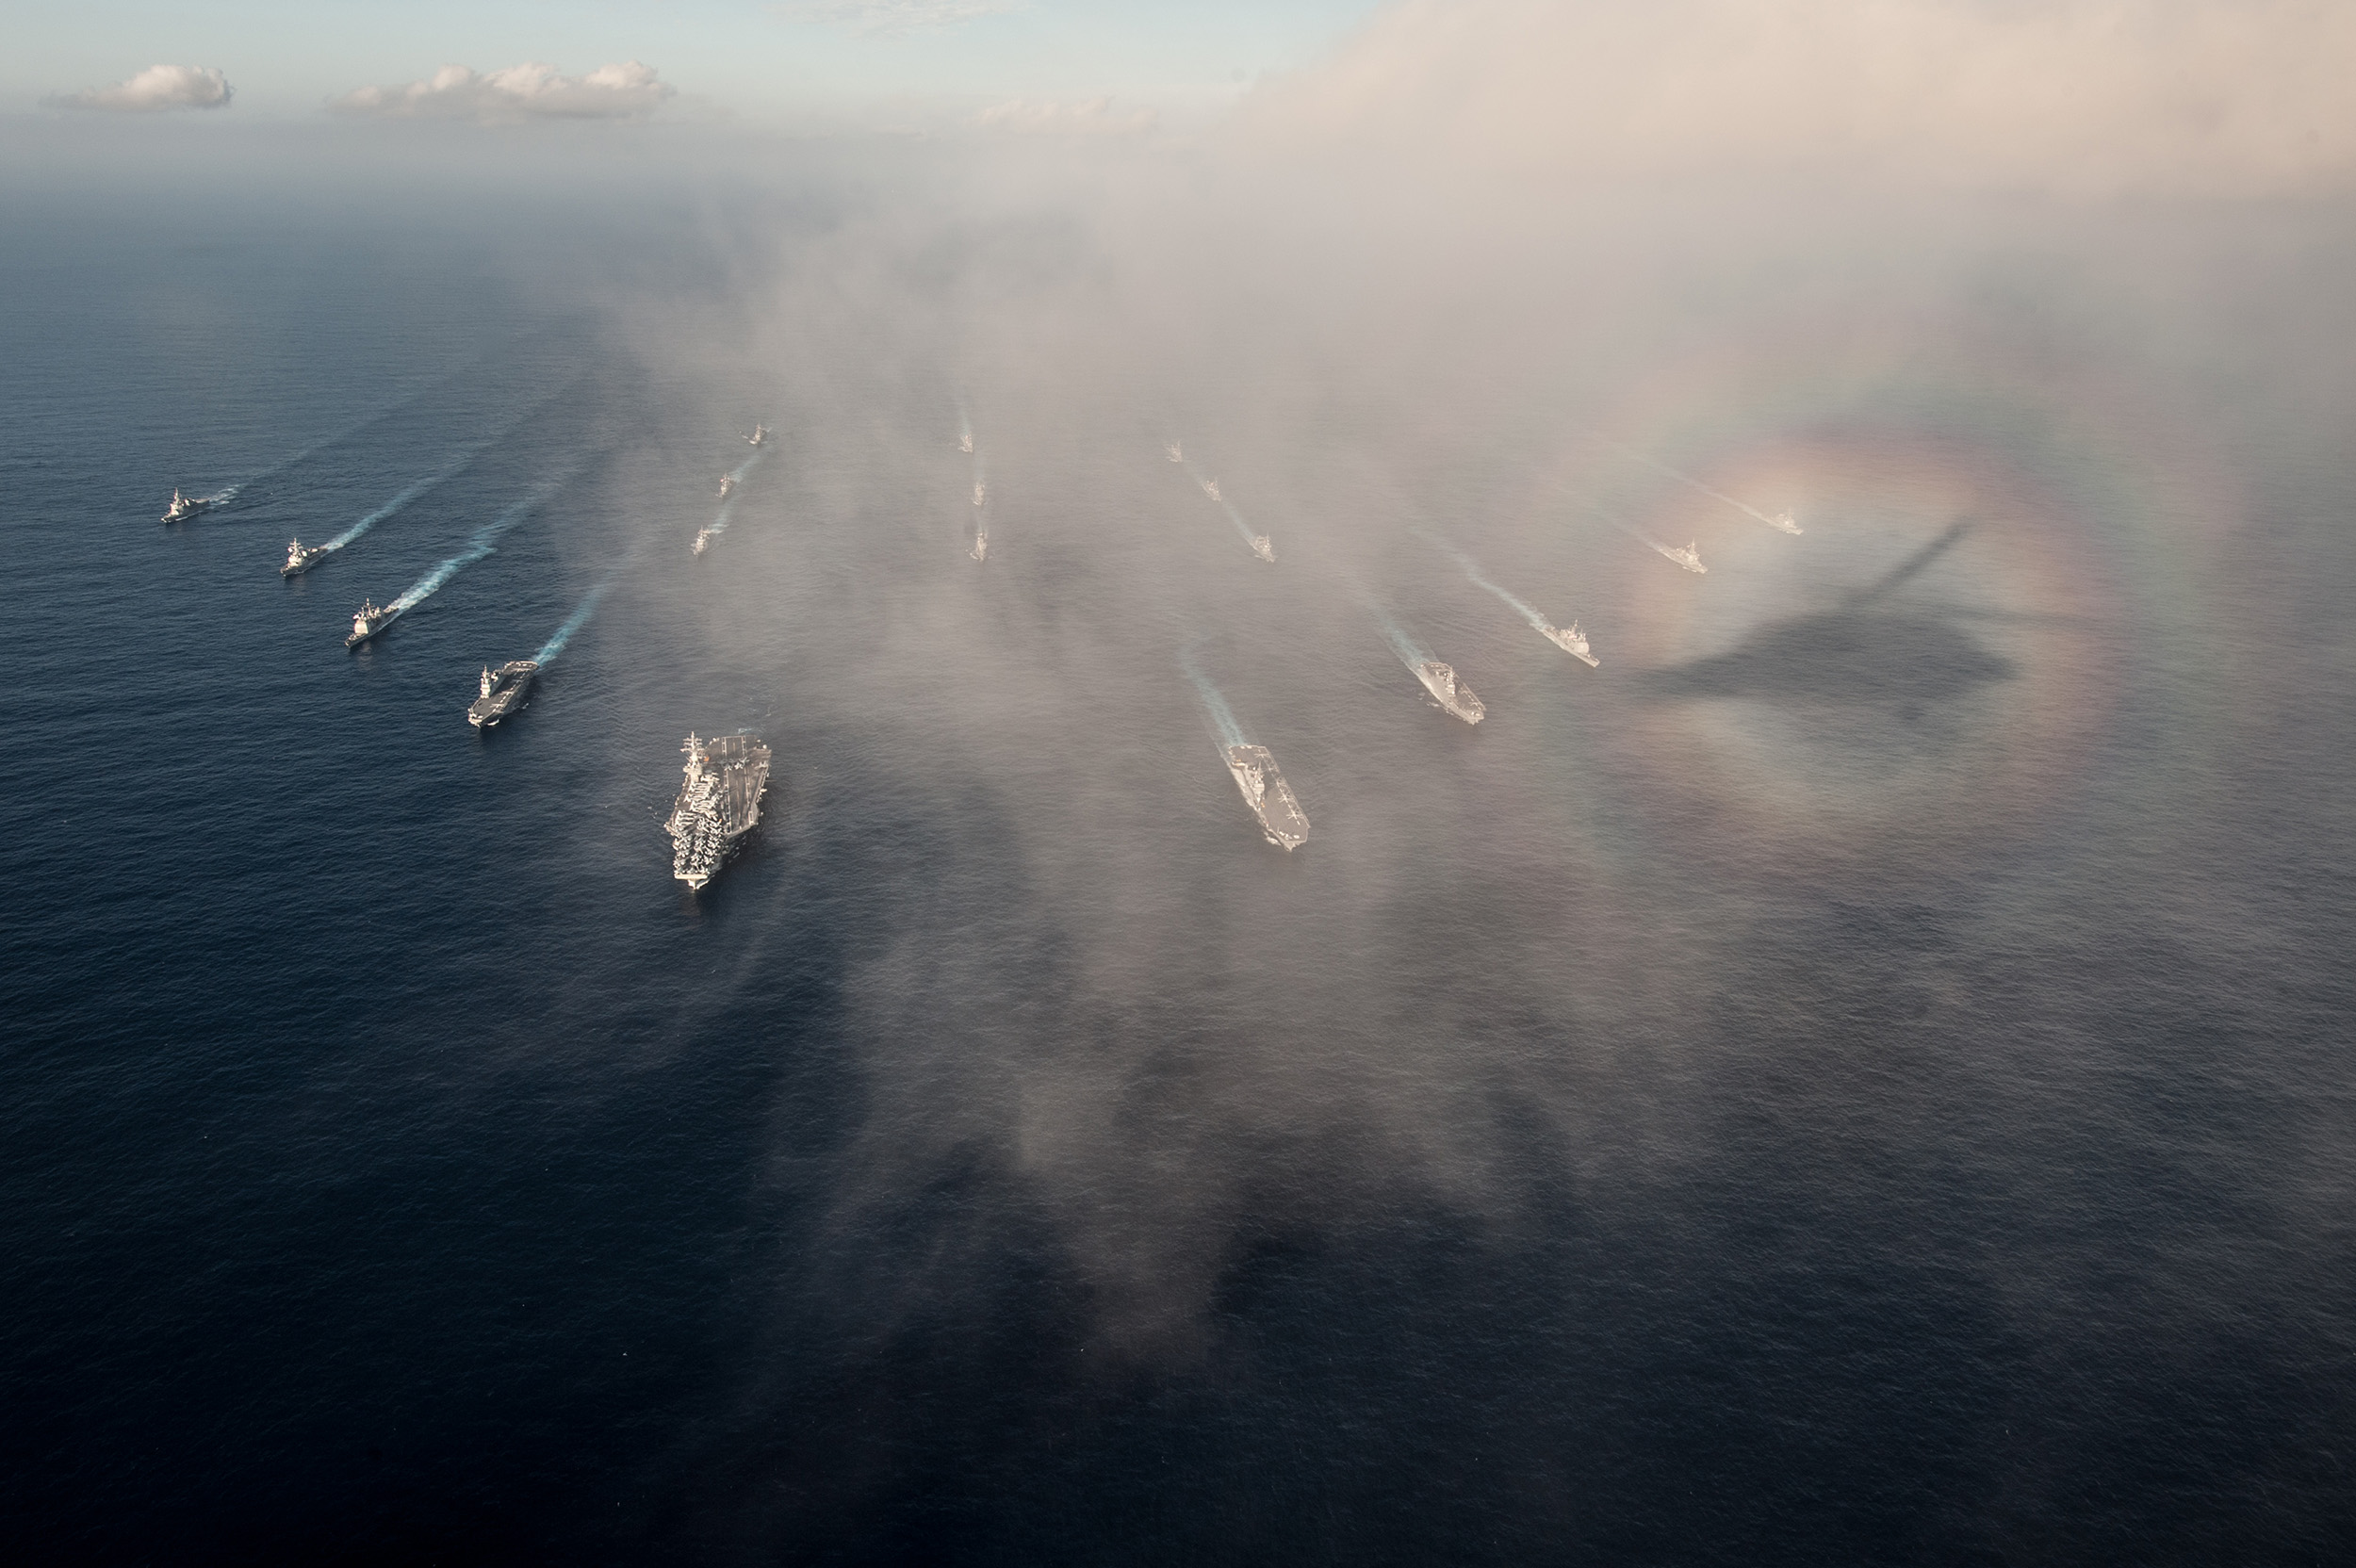 151123-N-OI810-519 WATERS SOUTH OF JAPAN (Nov. 23, 2015) The Ronald Reagan Carrier Strike Group (CSG) is underway in formation with Japan Maritime Self-Defense Force ships for a photo exercise during Annual Exercise 16. The Ronald Reagan CSG is participating in Annual Exercise 16 to increase interoperability between Japanese and American forces through training in air and sea operations. (U.S. Navy photo by Mass Communication Specialist 3rd Class Nathan Burke/Released)